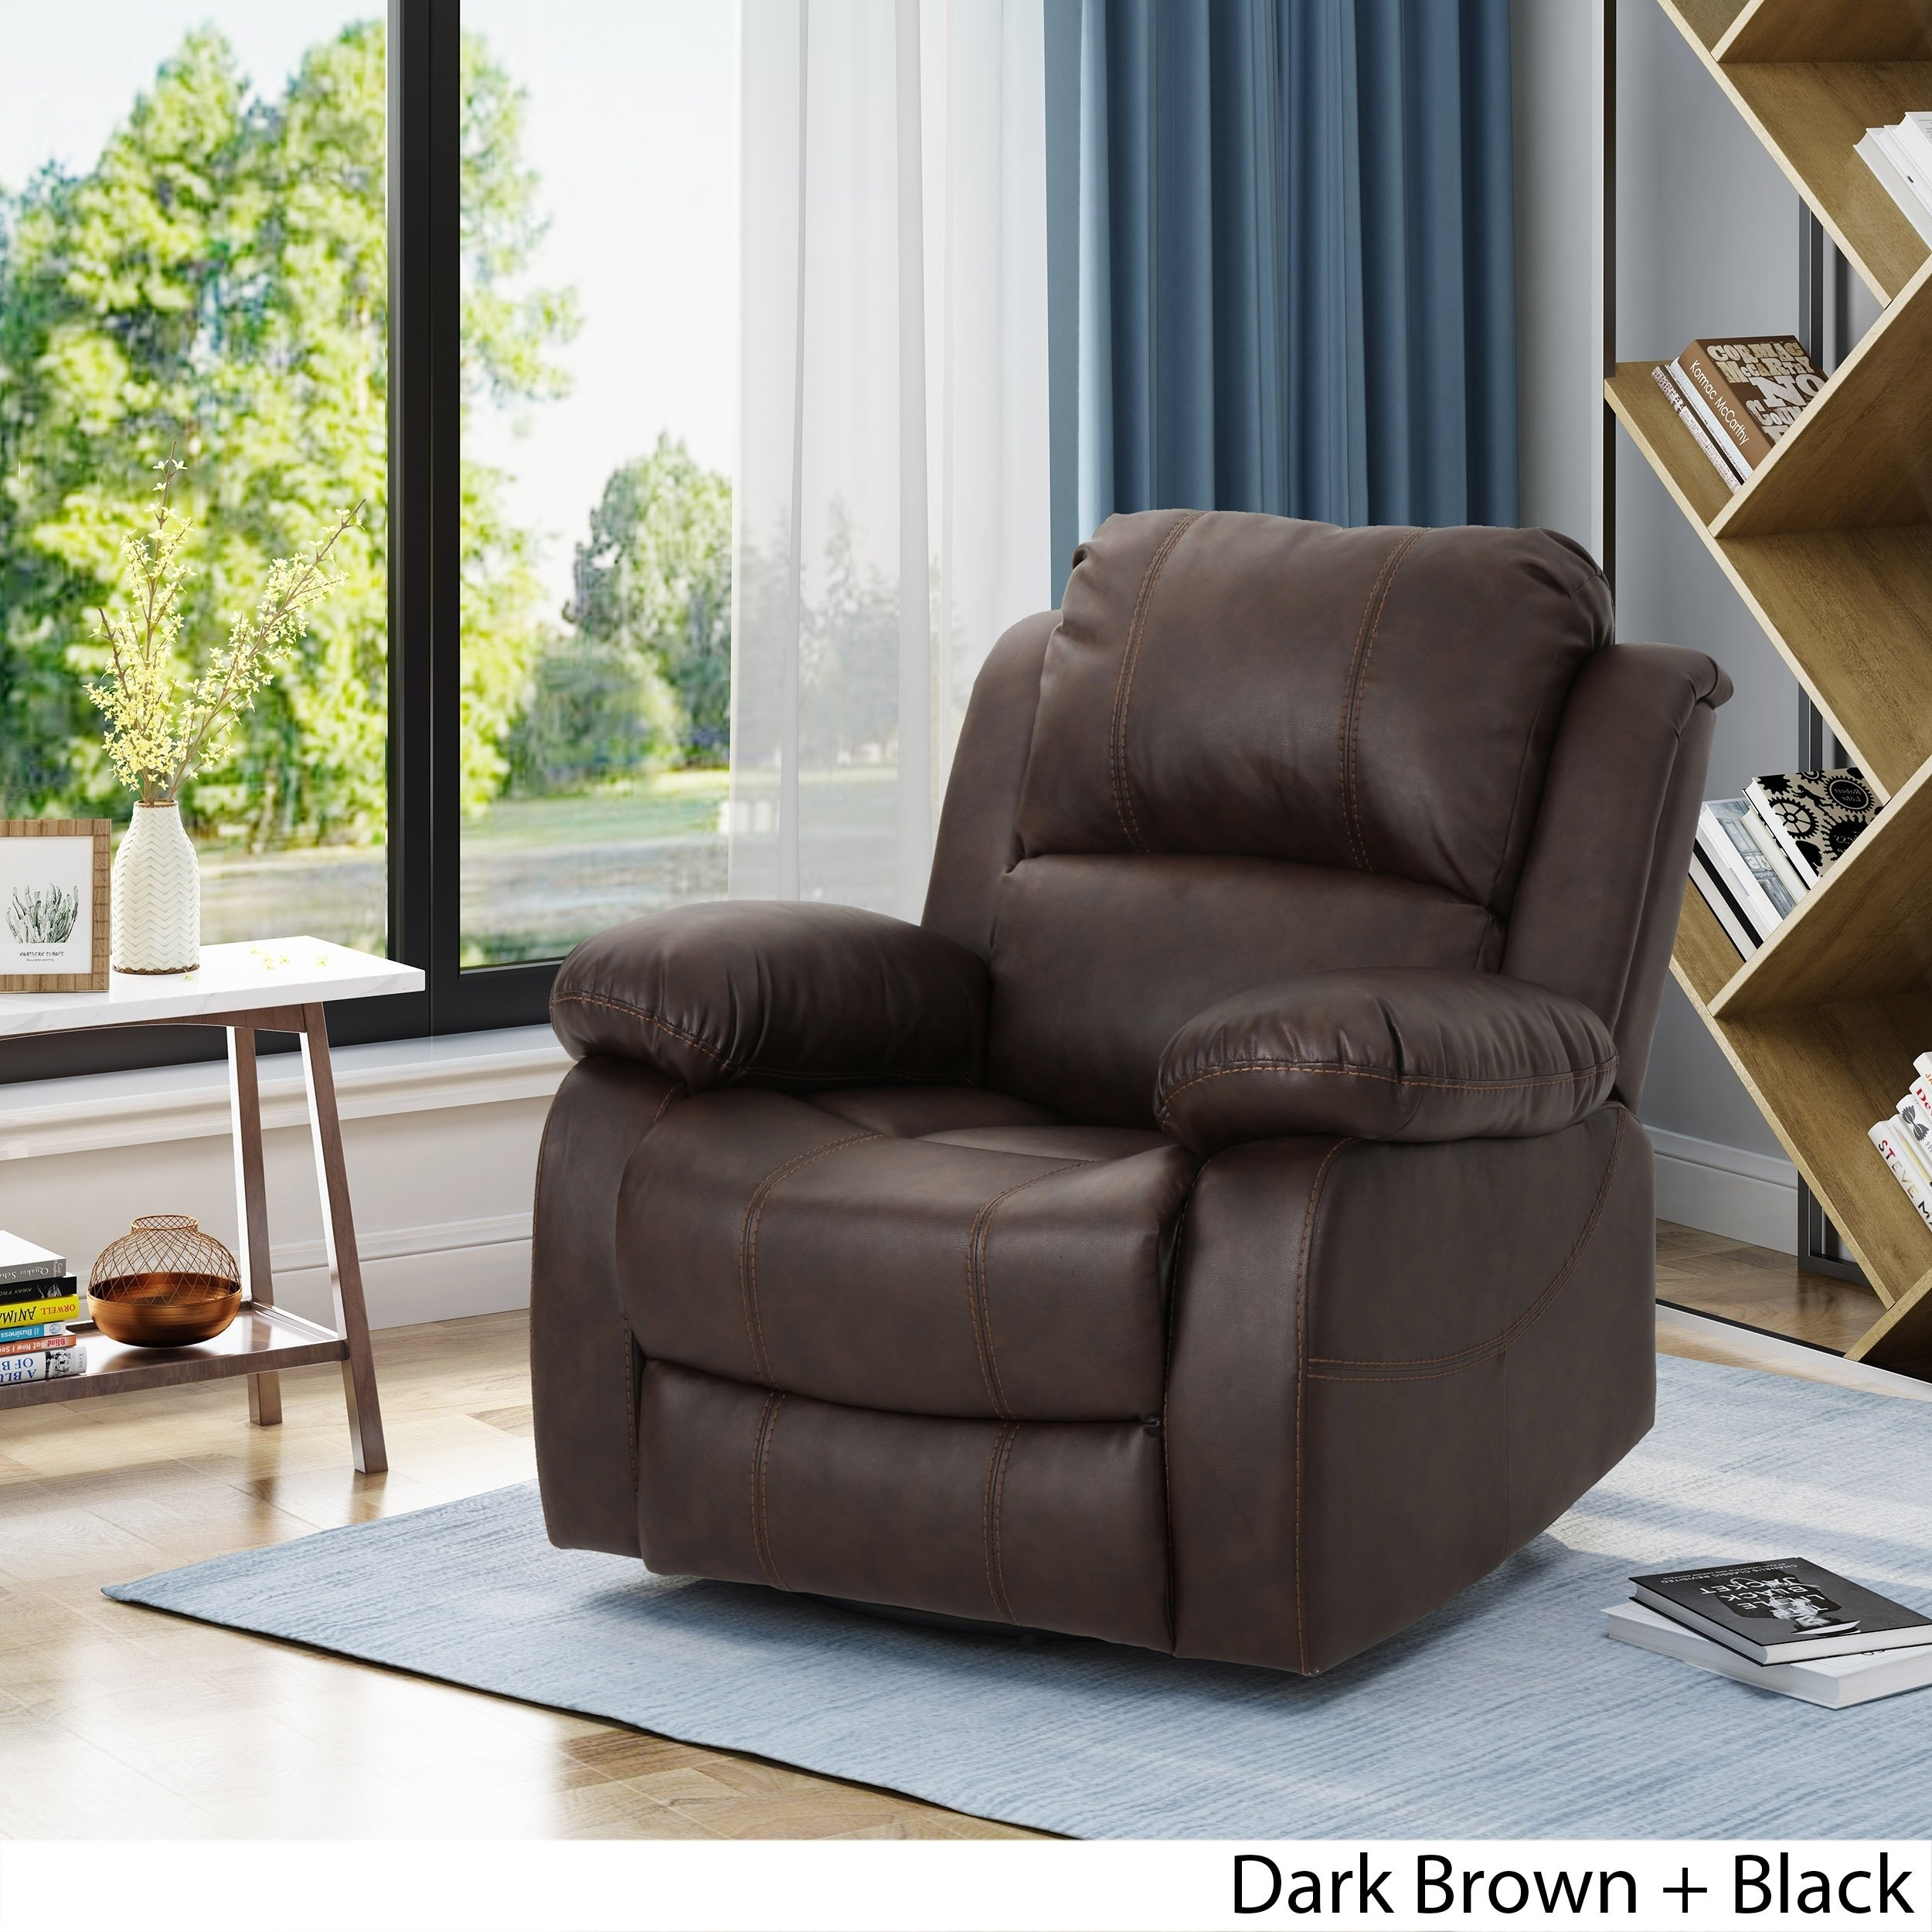 Shop Alianna Classic Leather Gliding Swivel Recliner Club Chair in Outdoor Koro Swivel Chairs